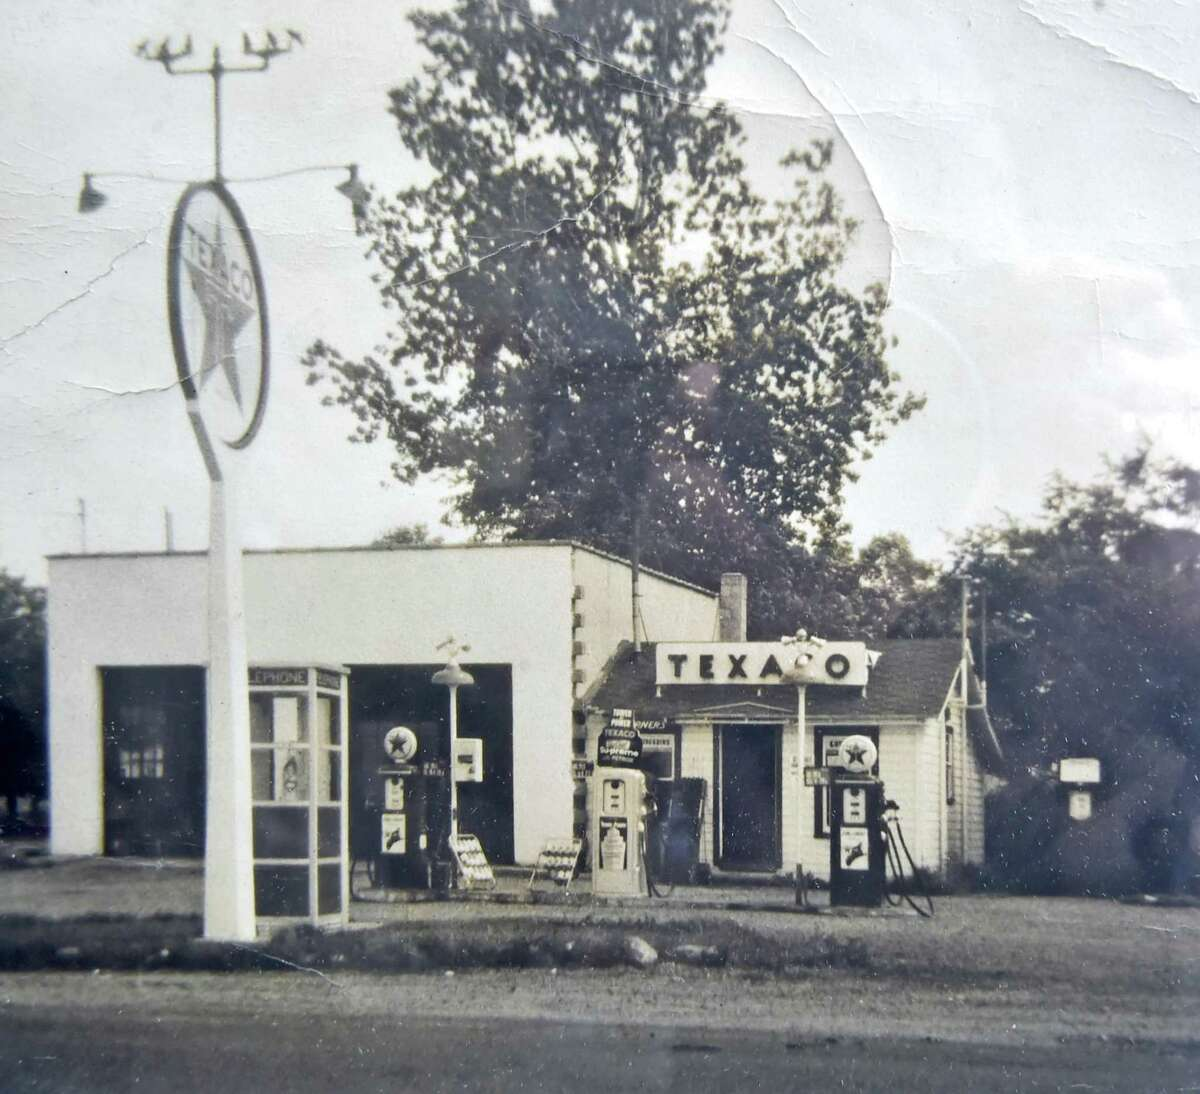 A vintage photograph shows The Four Corners Gas Station on Route 80 in Guilford. The gas station has been family run since 1933.